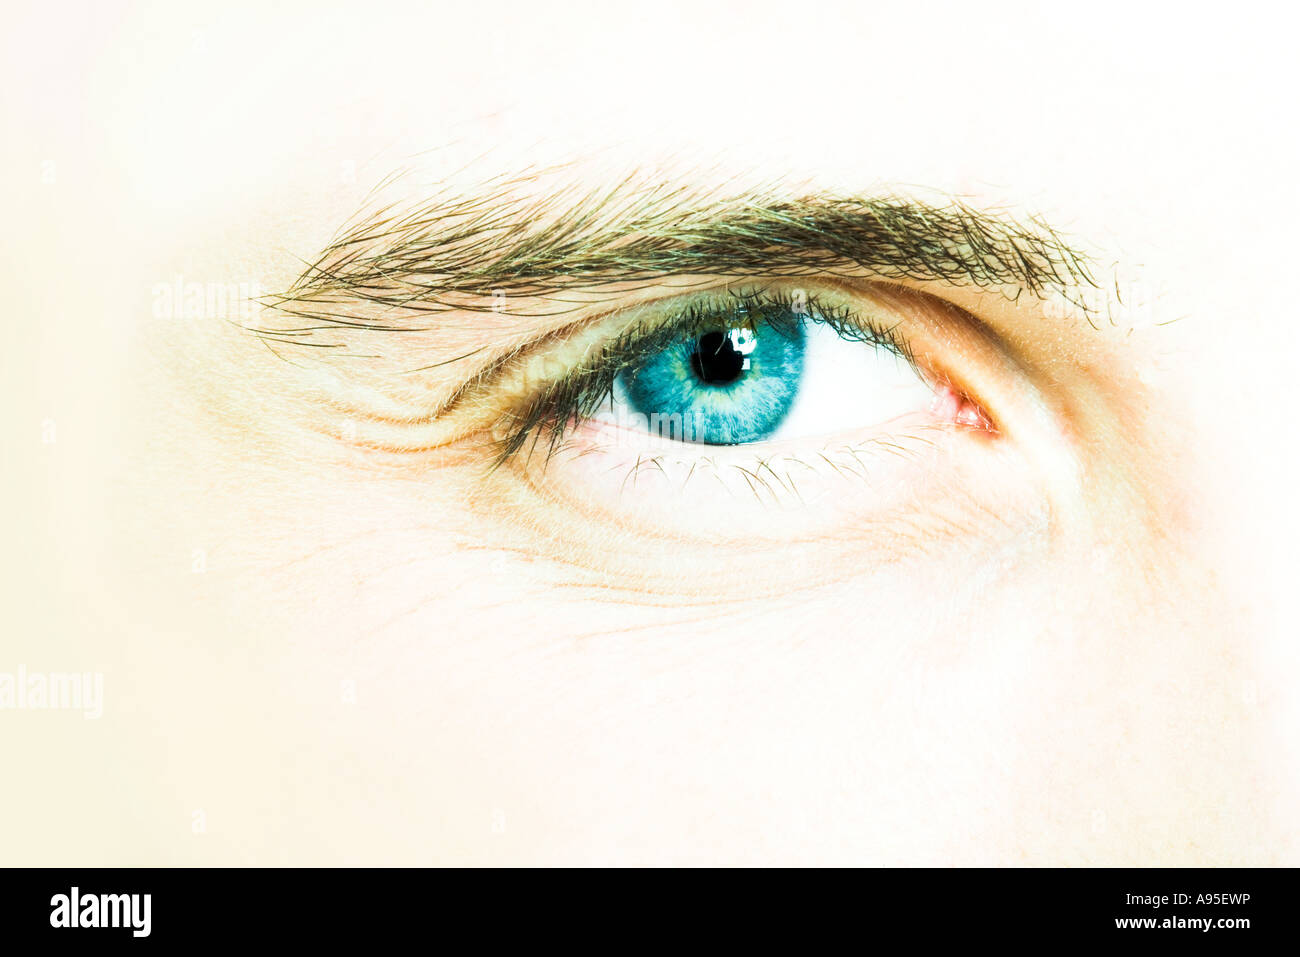 Young man's eye, extreme close-up - Stock Image